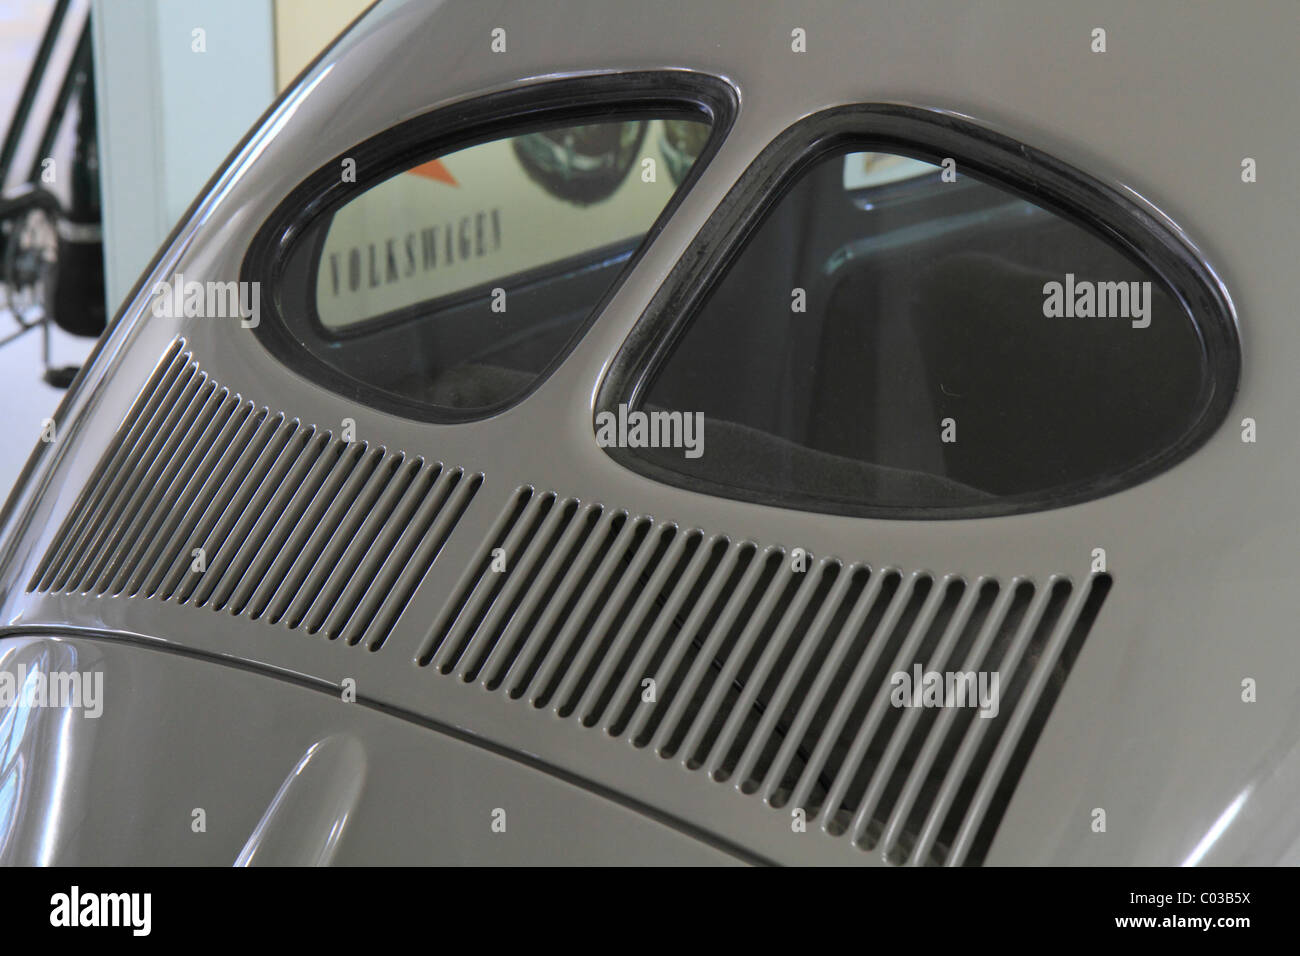 Split rear window of a VW 1200 Standard, built in 1948, unchanged pre-war design, Volkswagen Beetle, ErfinderZeiten: - Stock Image